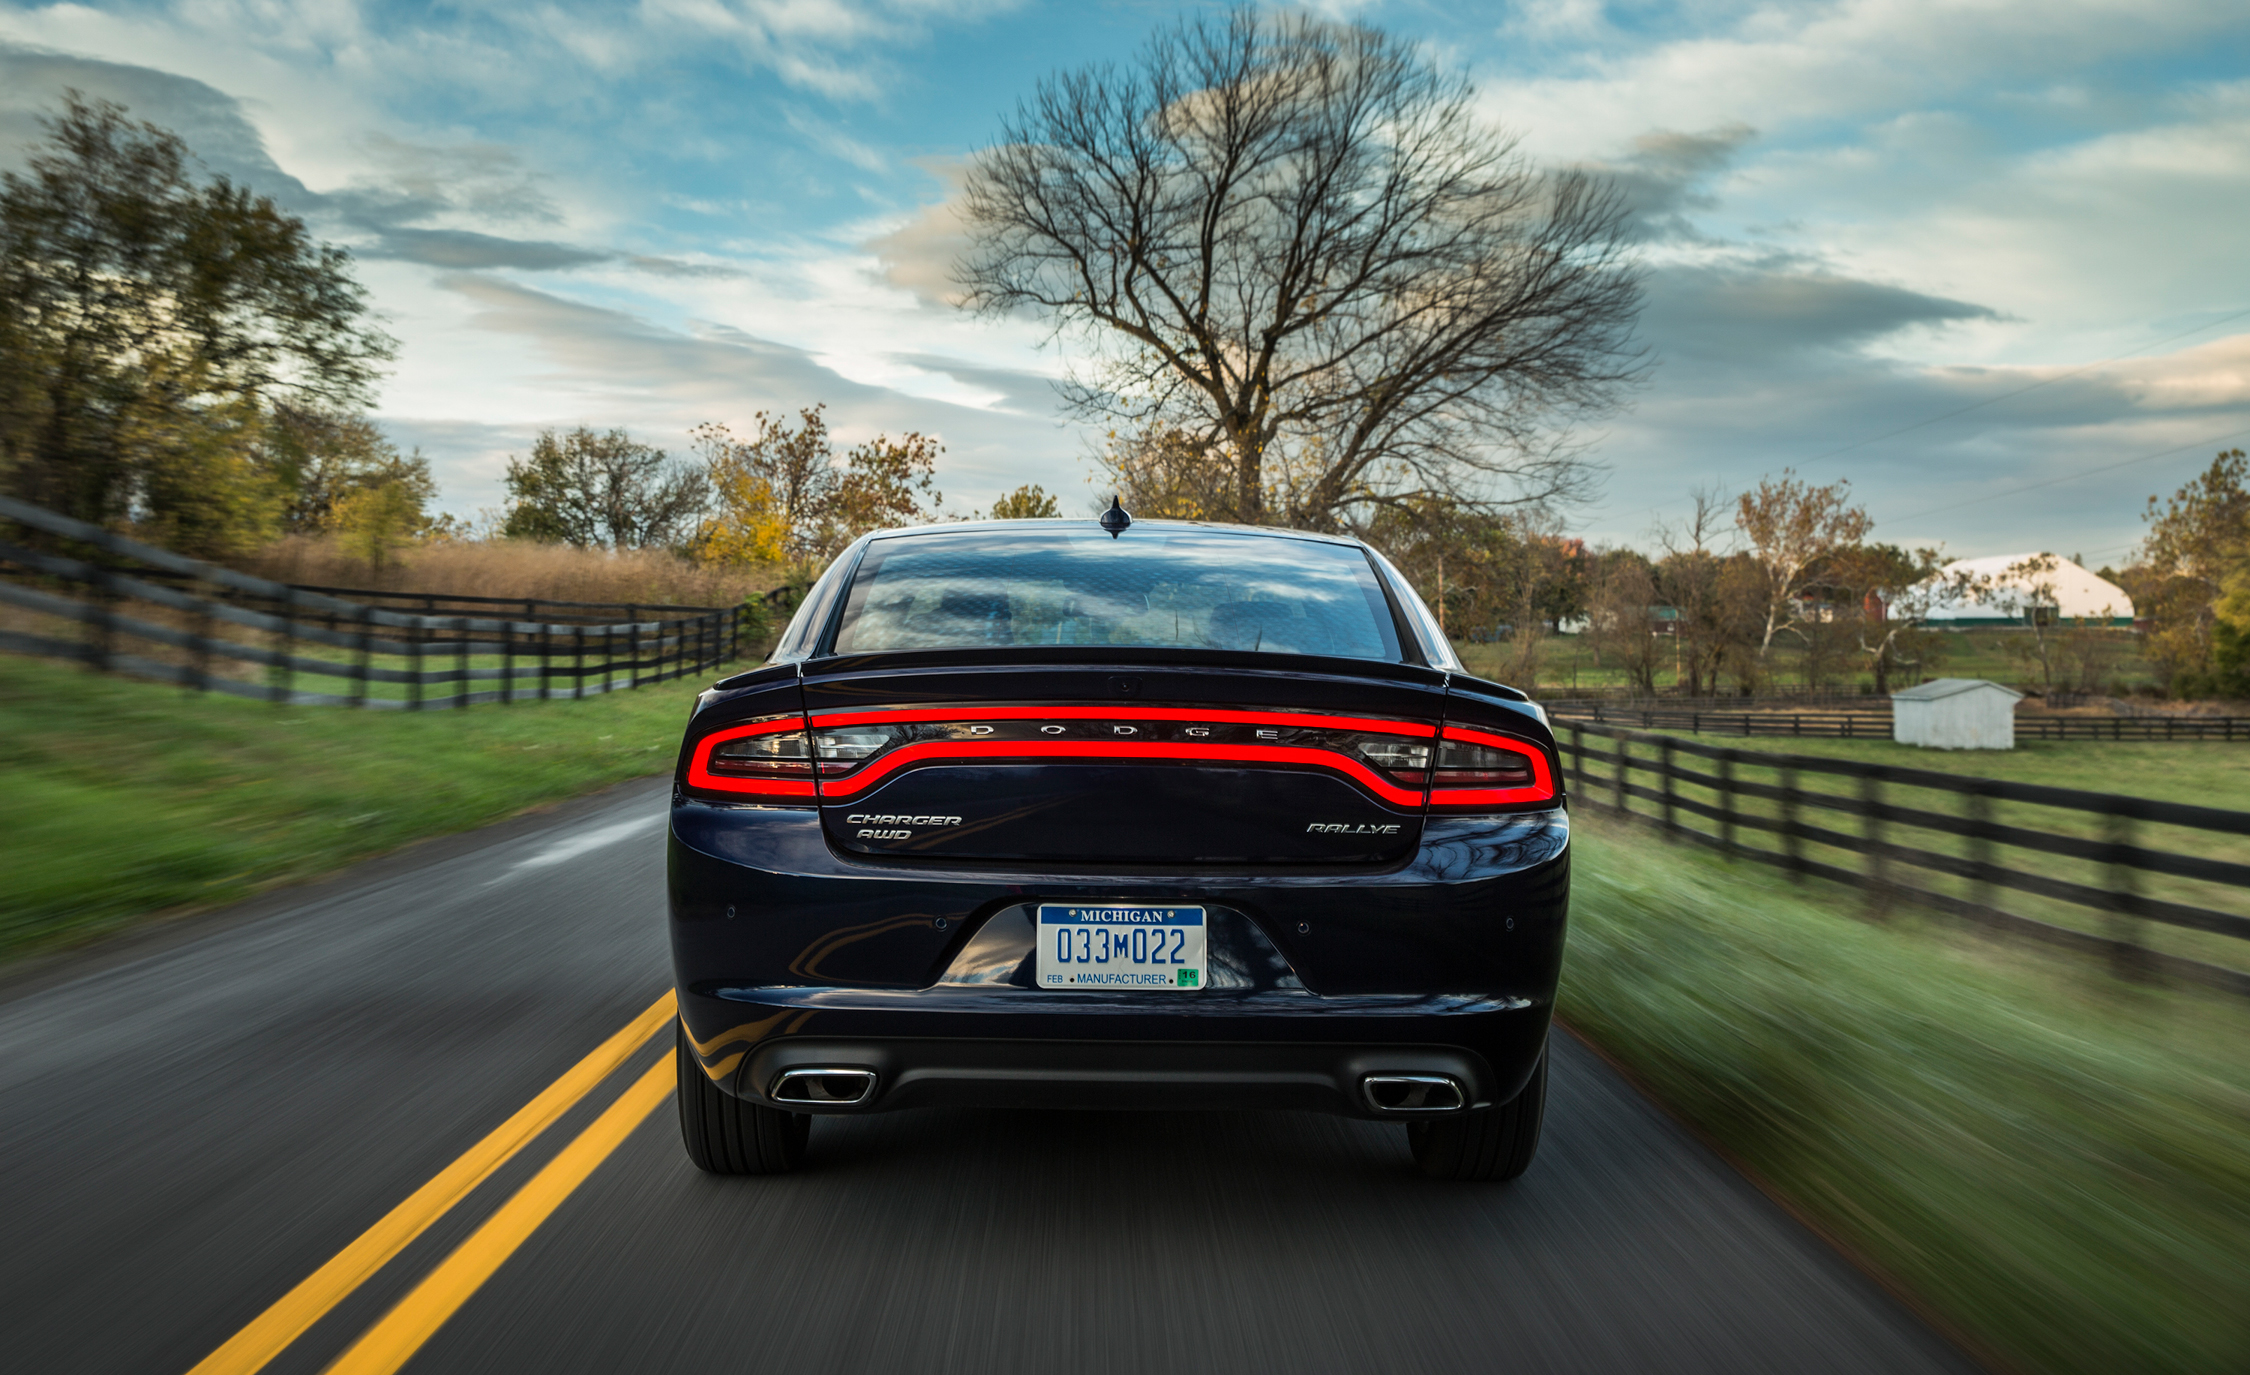 2015 Dodge Charger AWD Rallye Exterior Rear View